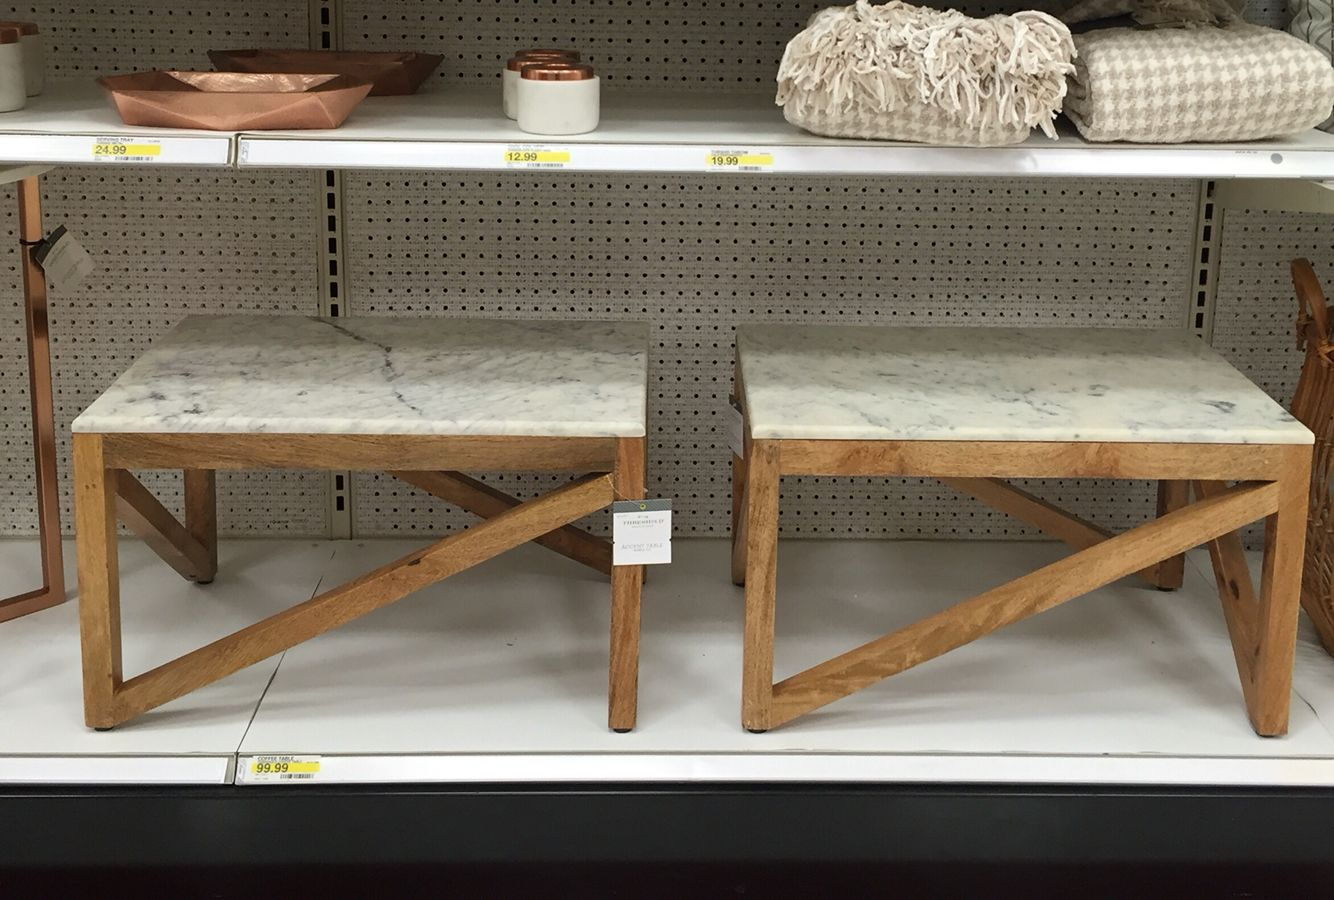 Target Marble And Wood Coffee Table 99 99 Wish List In